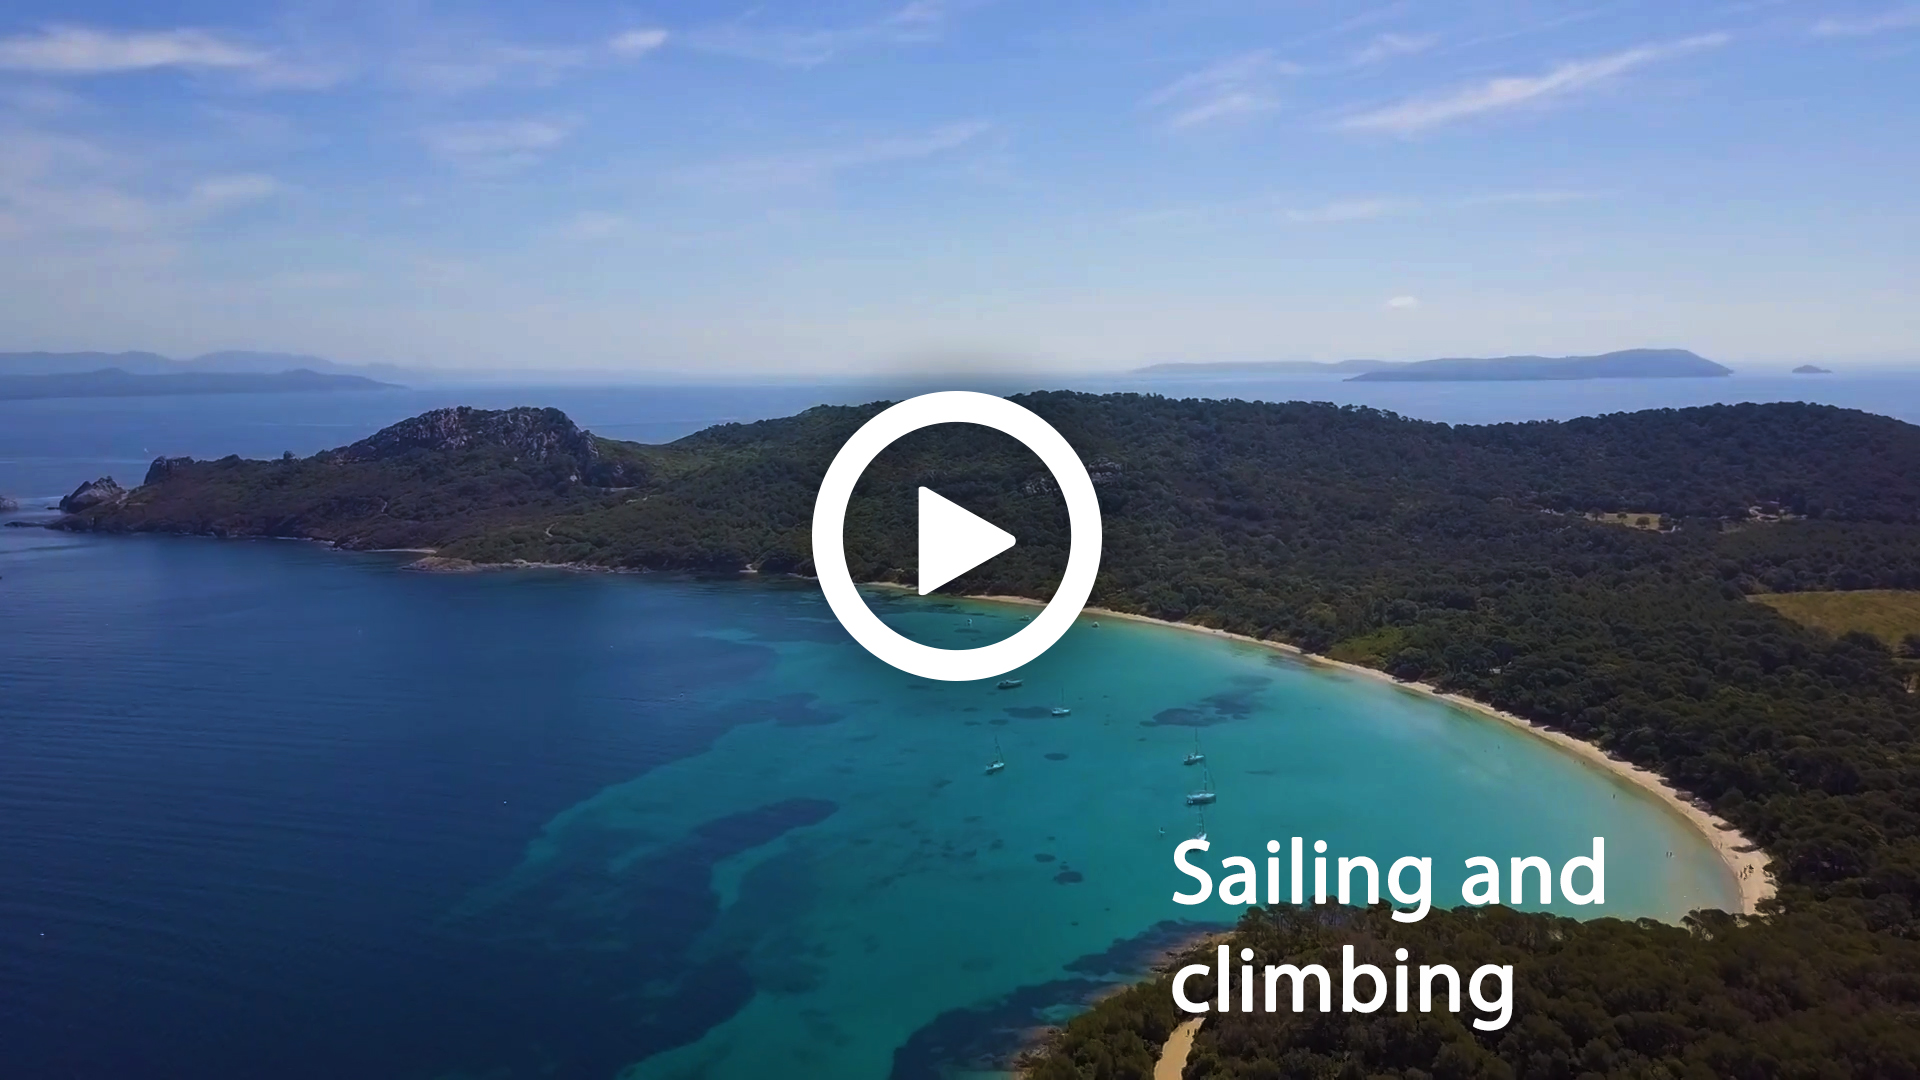 Sailing video to sale - Sailing and climbing video